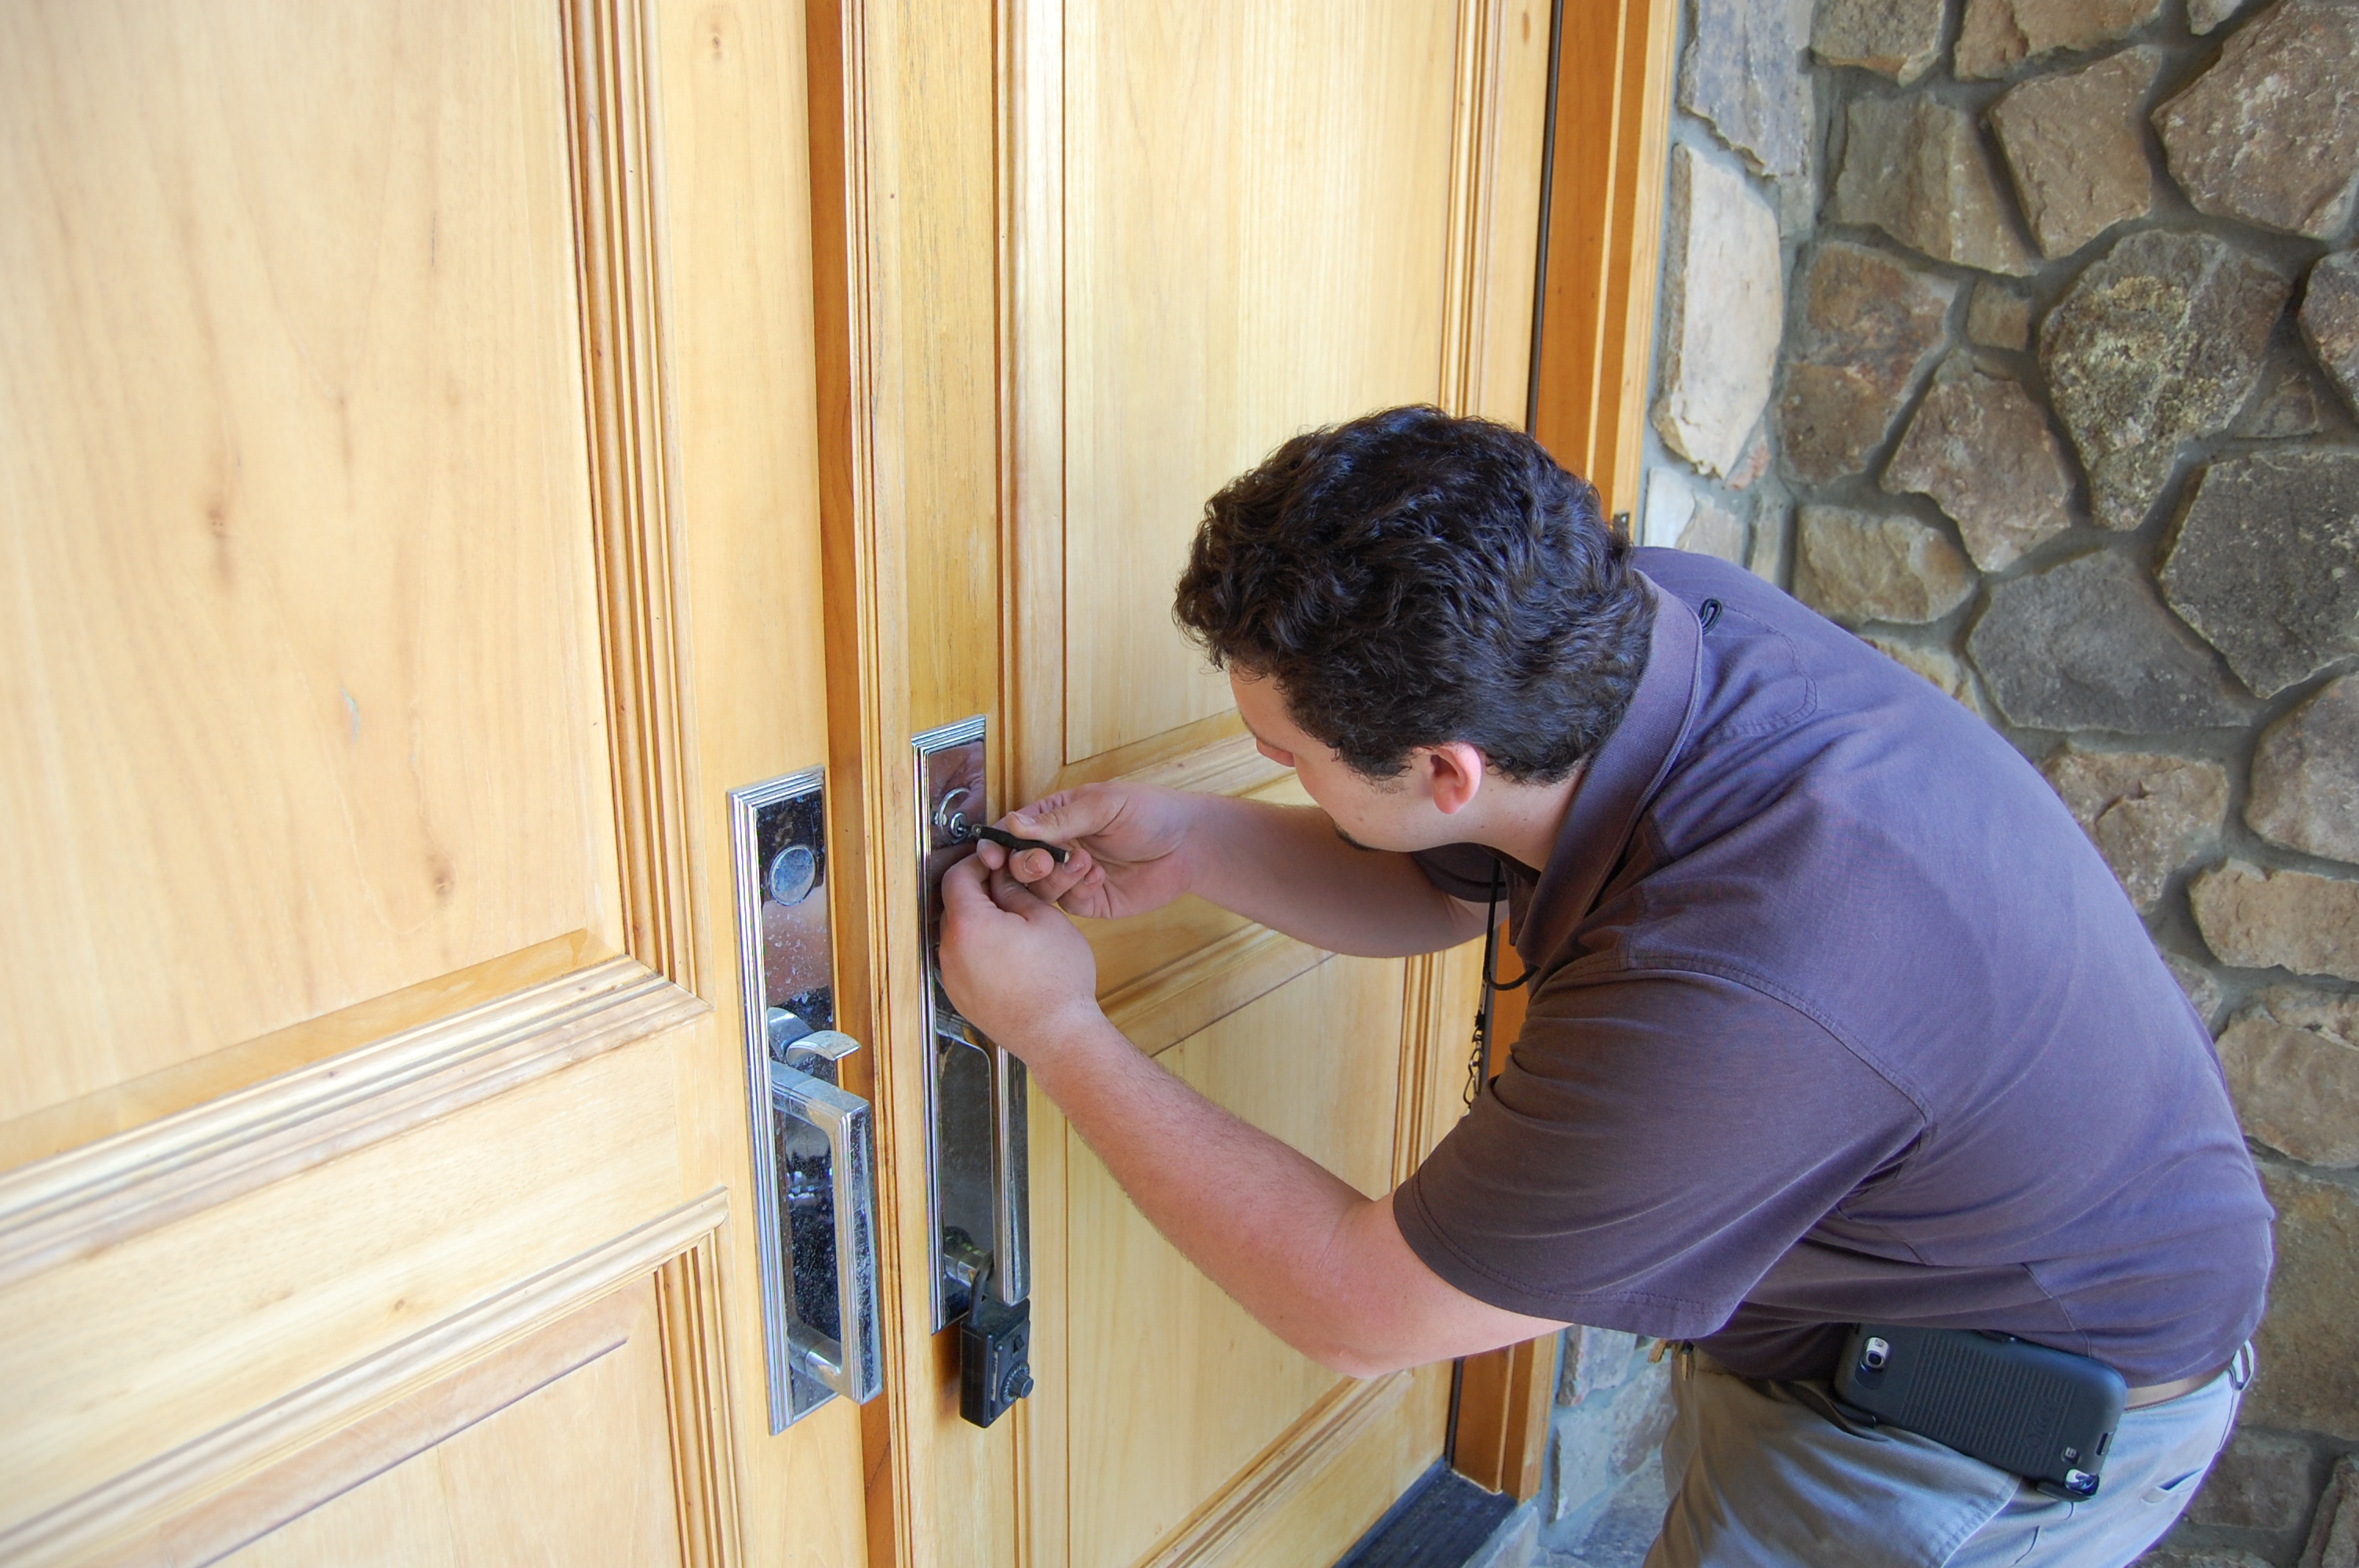 Locksmith Services – You Could Be Surprised at What Is Available